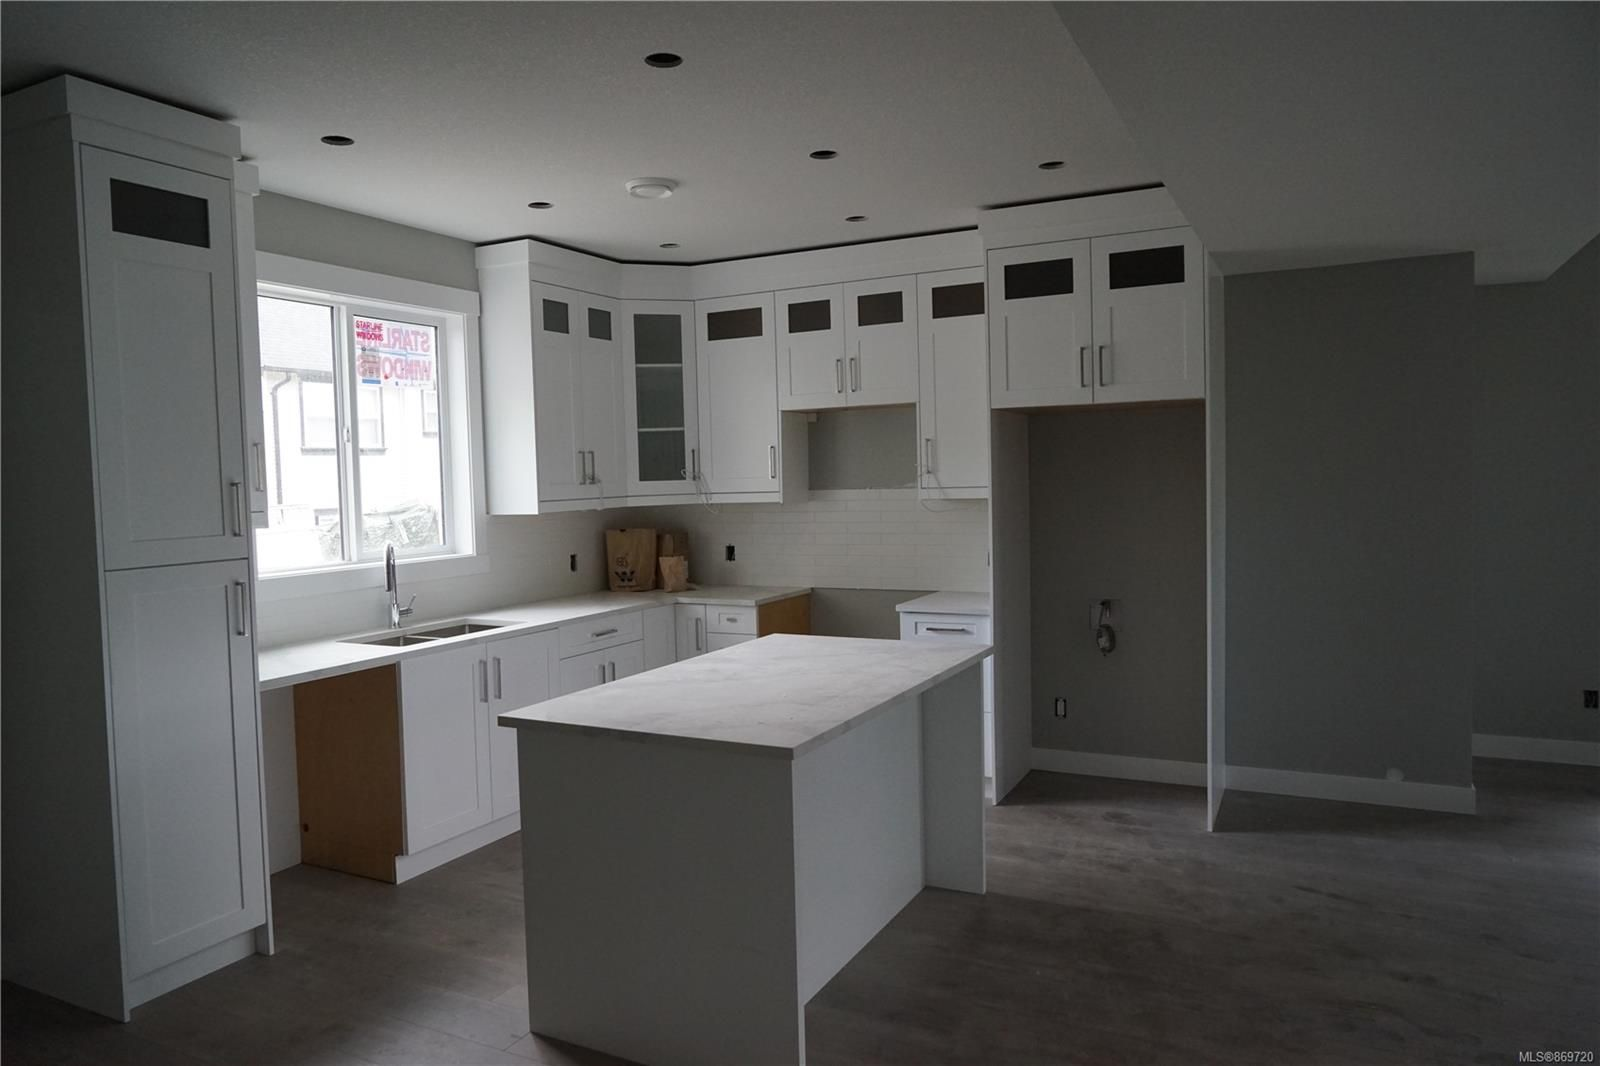 Photo 11: Photos: 770 Bruce Ave in : Na South Nanaimo House for sale (Nanaimo)  : MLS®# 869720